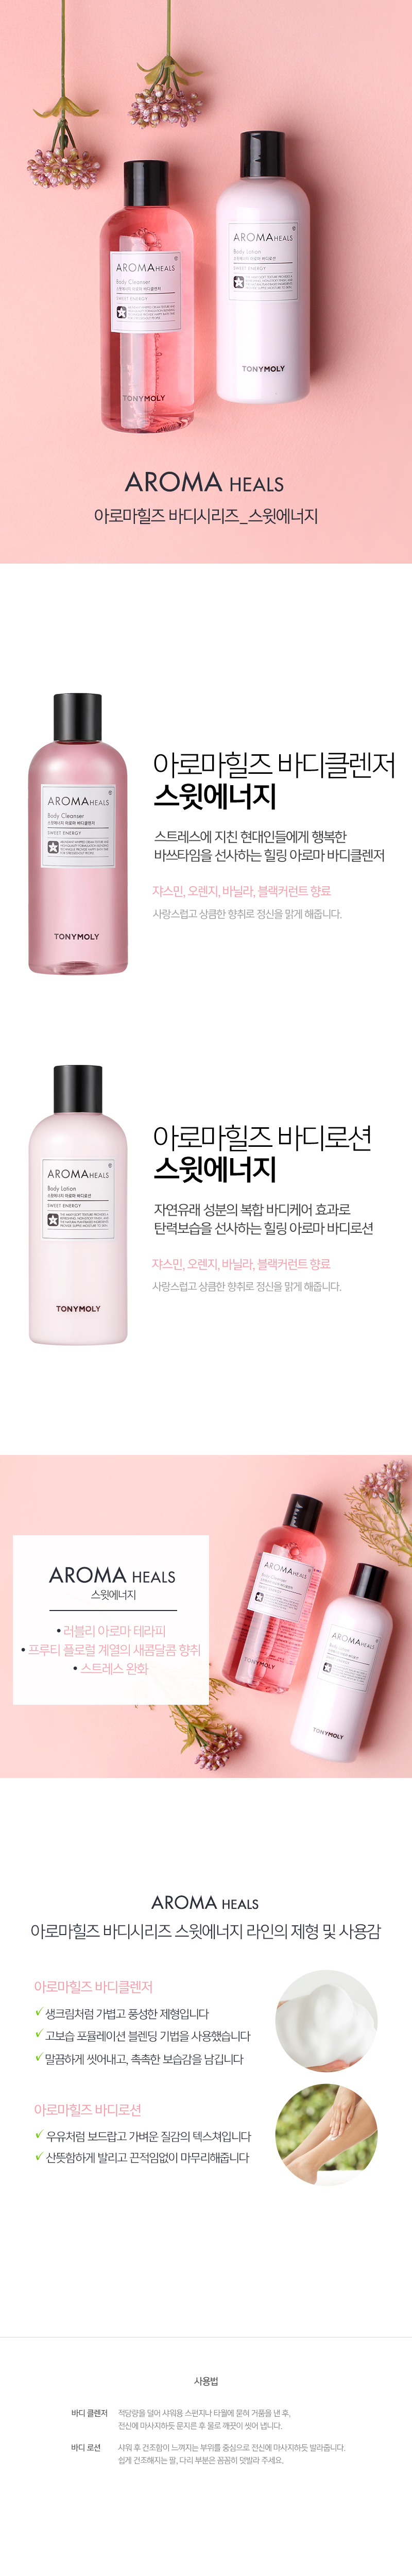 Tony Moly Aroma Heals Body Cleanser 300ml malaysia singapore indonesia